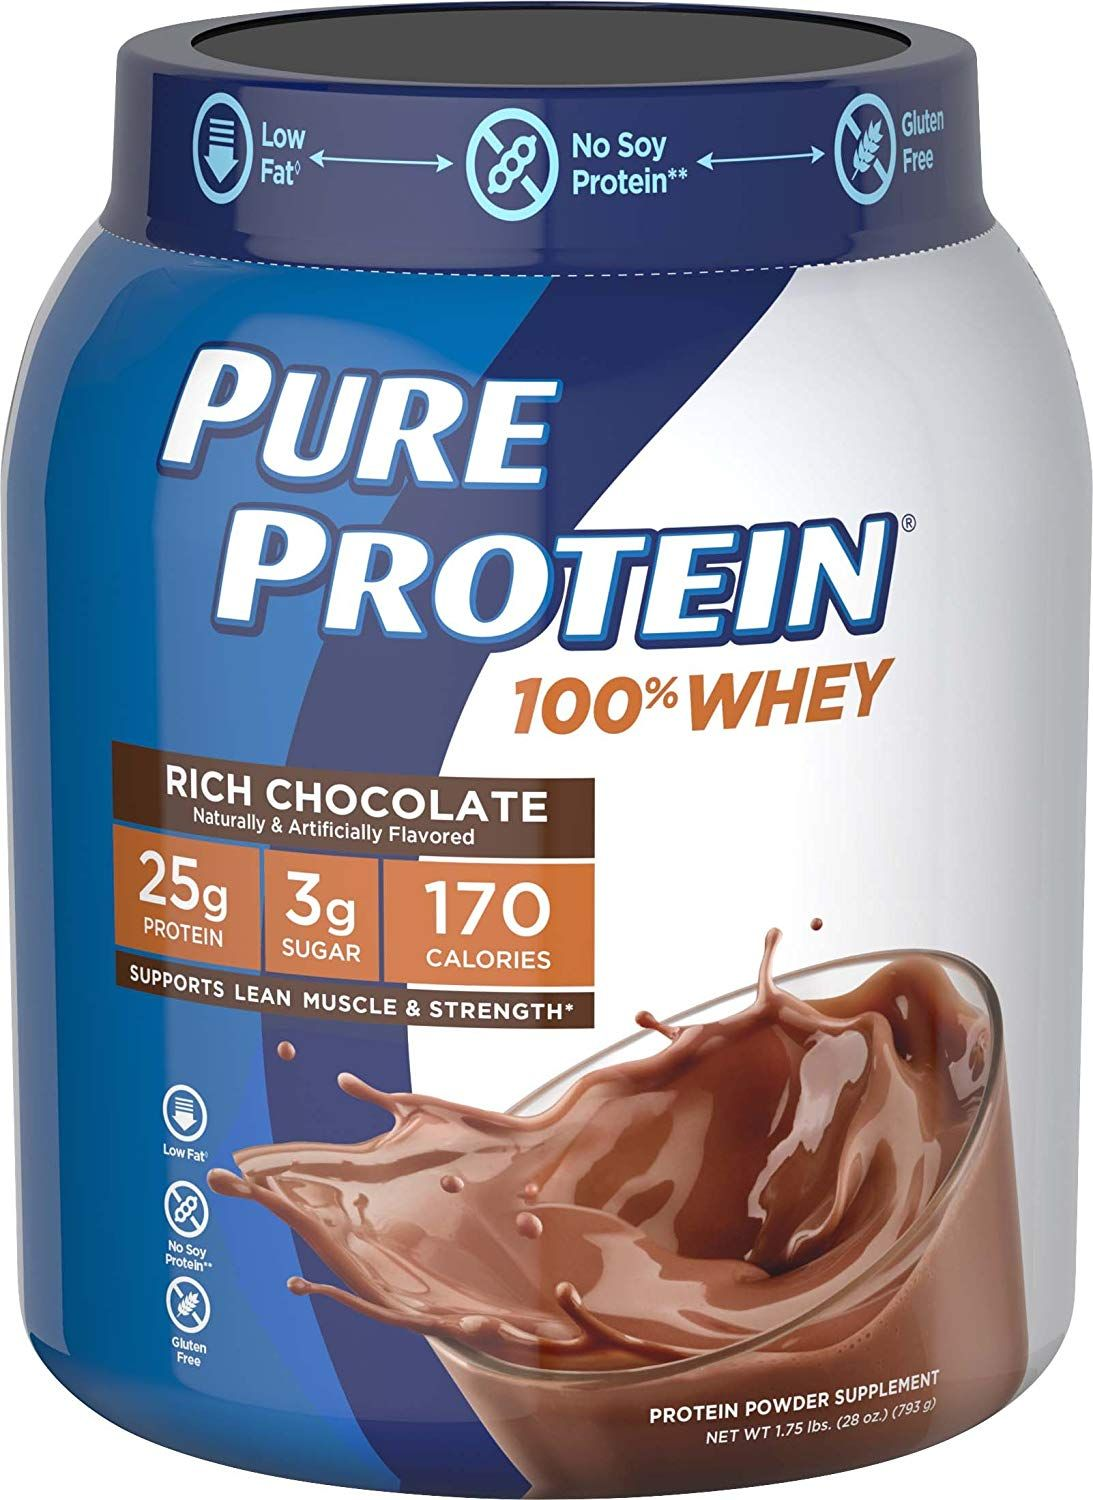 Pure Protein Powder Whey High Protein Low Sugar Gluten Free Rich Chocolate 1 75 Lbs Affiliate Link In 2020 Pure Protein Shakes Pure Protein Calories In Sugar